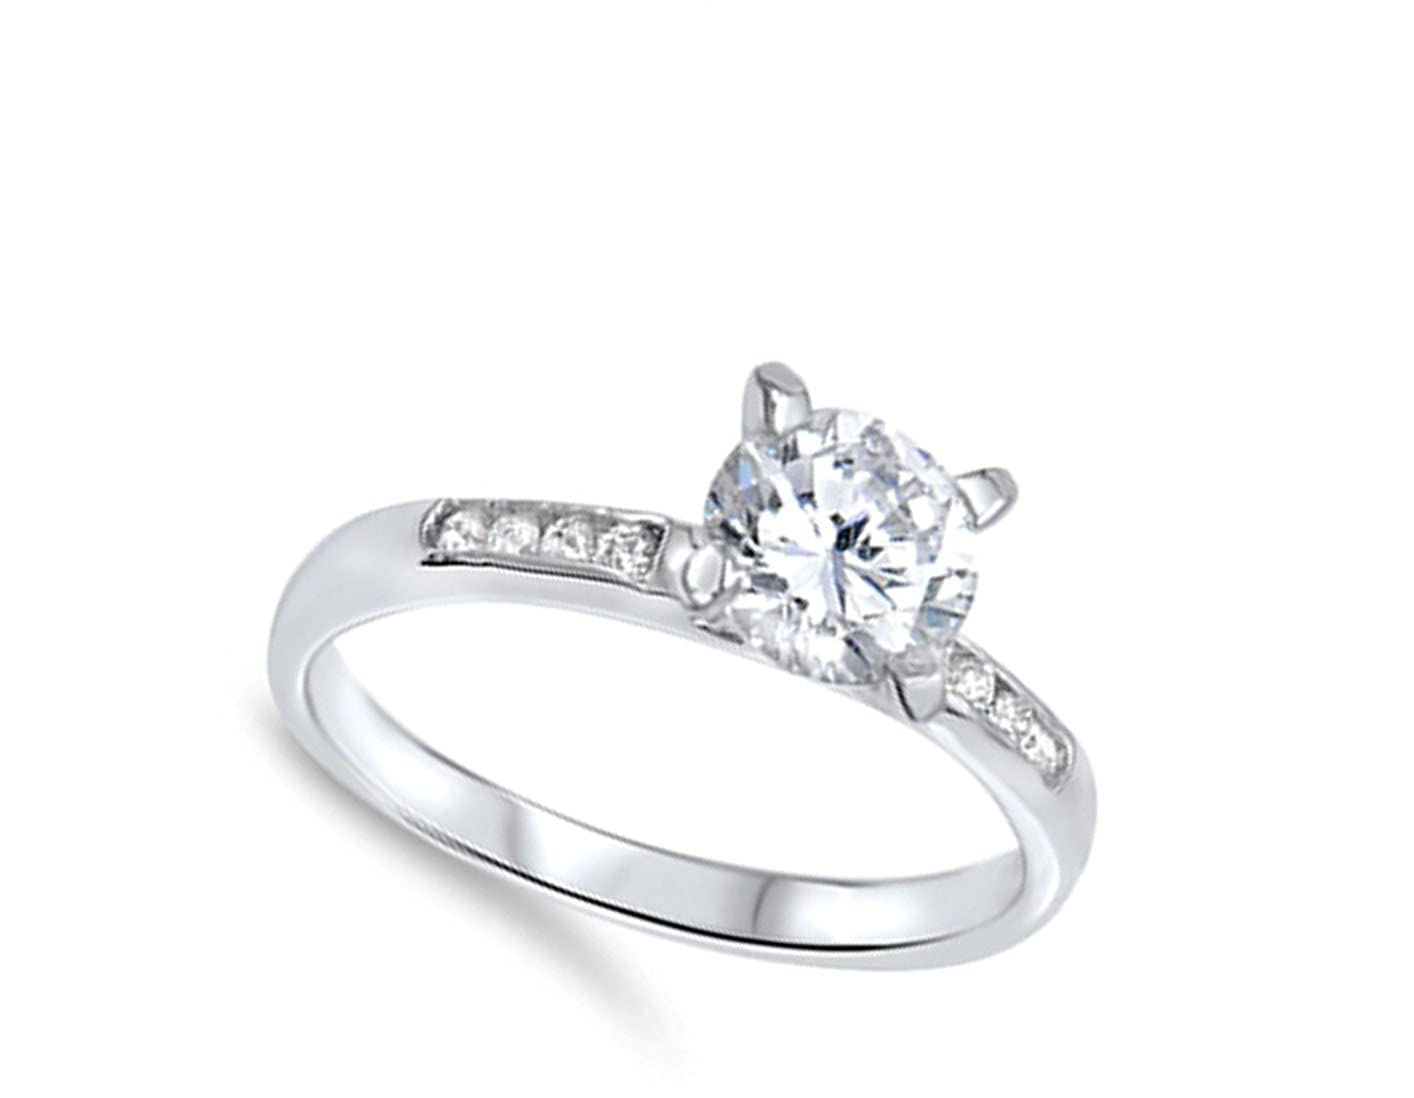 Women/'s Wedding Solitaire White CZ Ring New .925 Sterling Silver Band Sizes 5-10